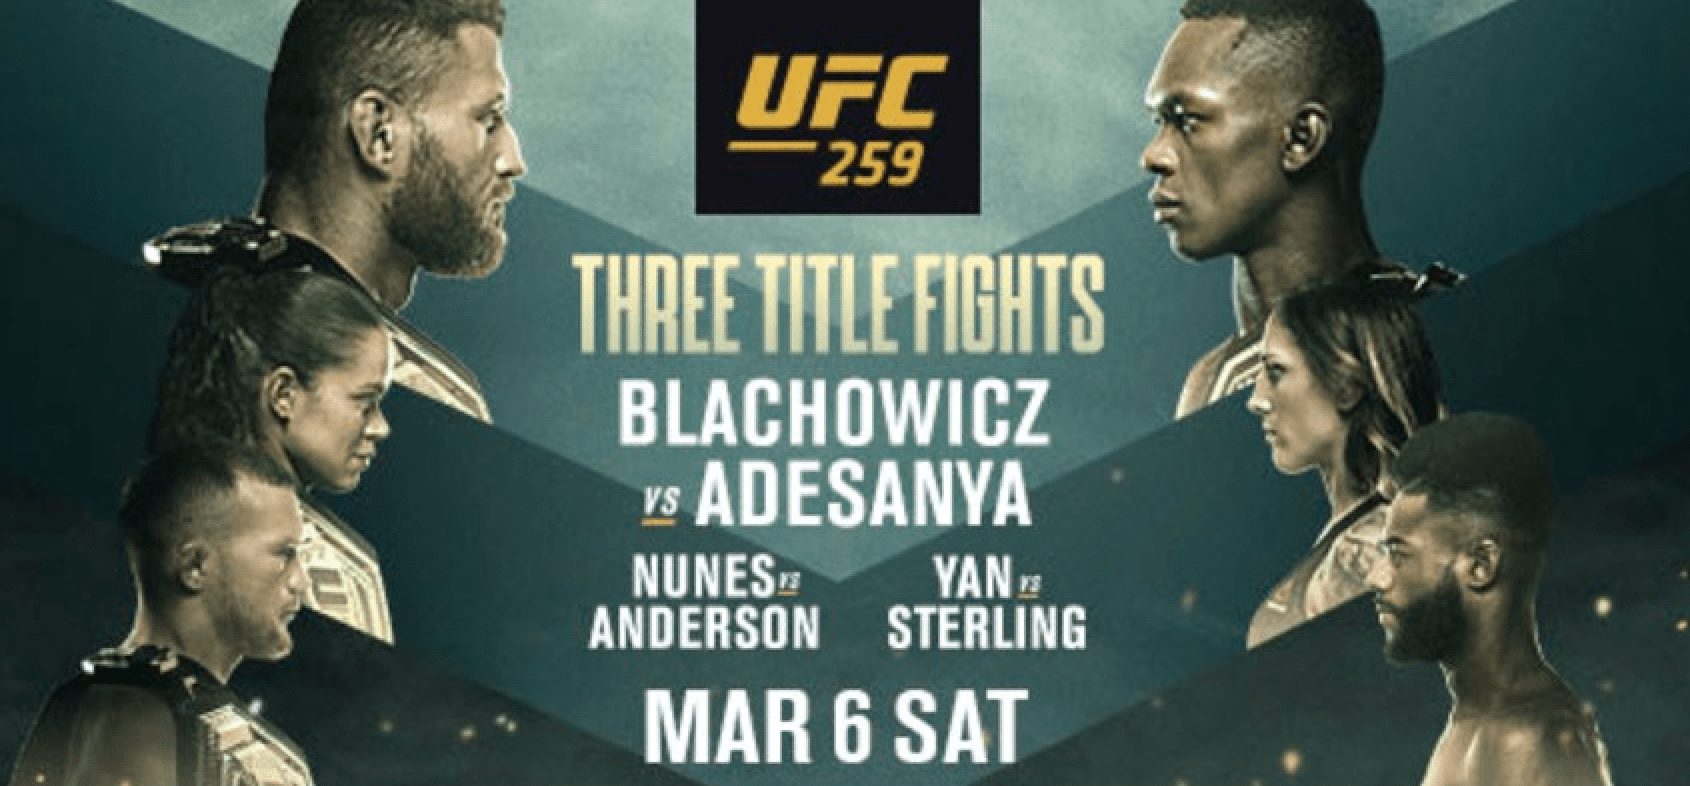 UFC 259: Blachowicz vs Adesanya Results And Post Fight Videos